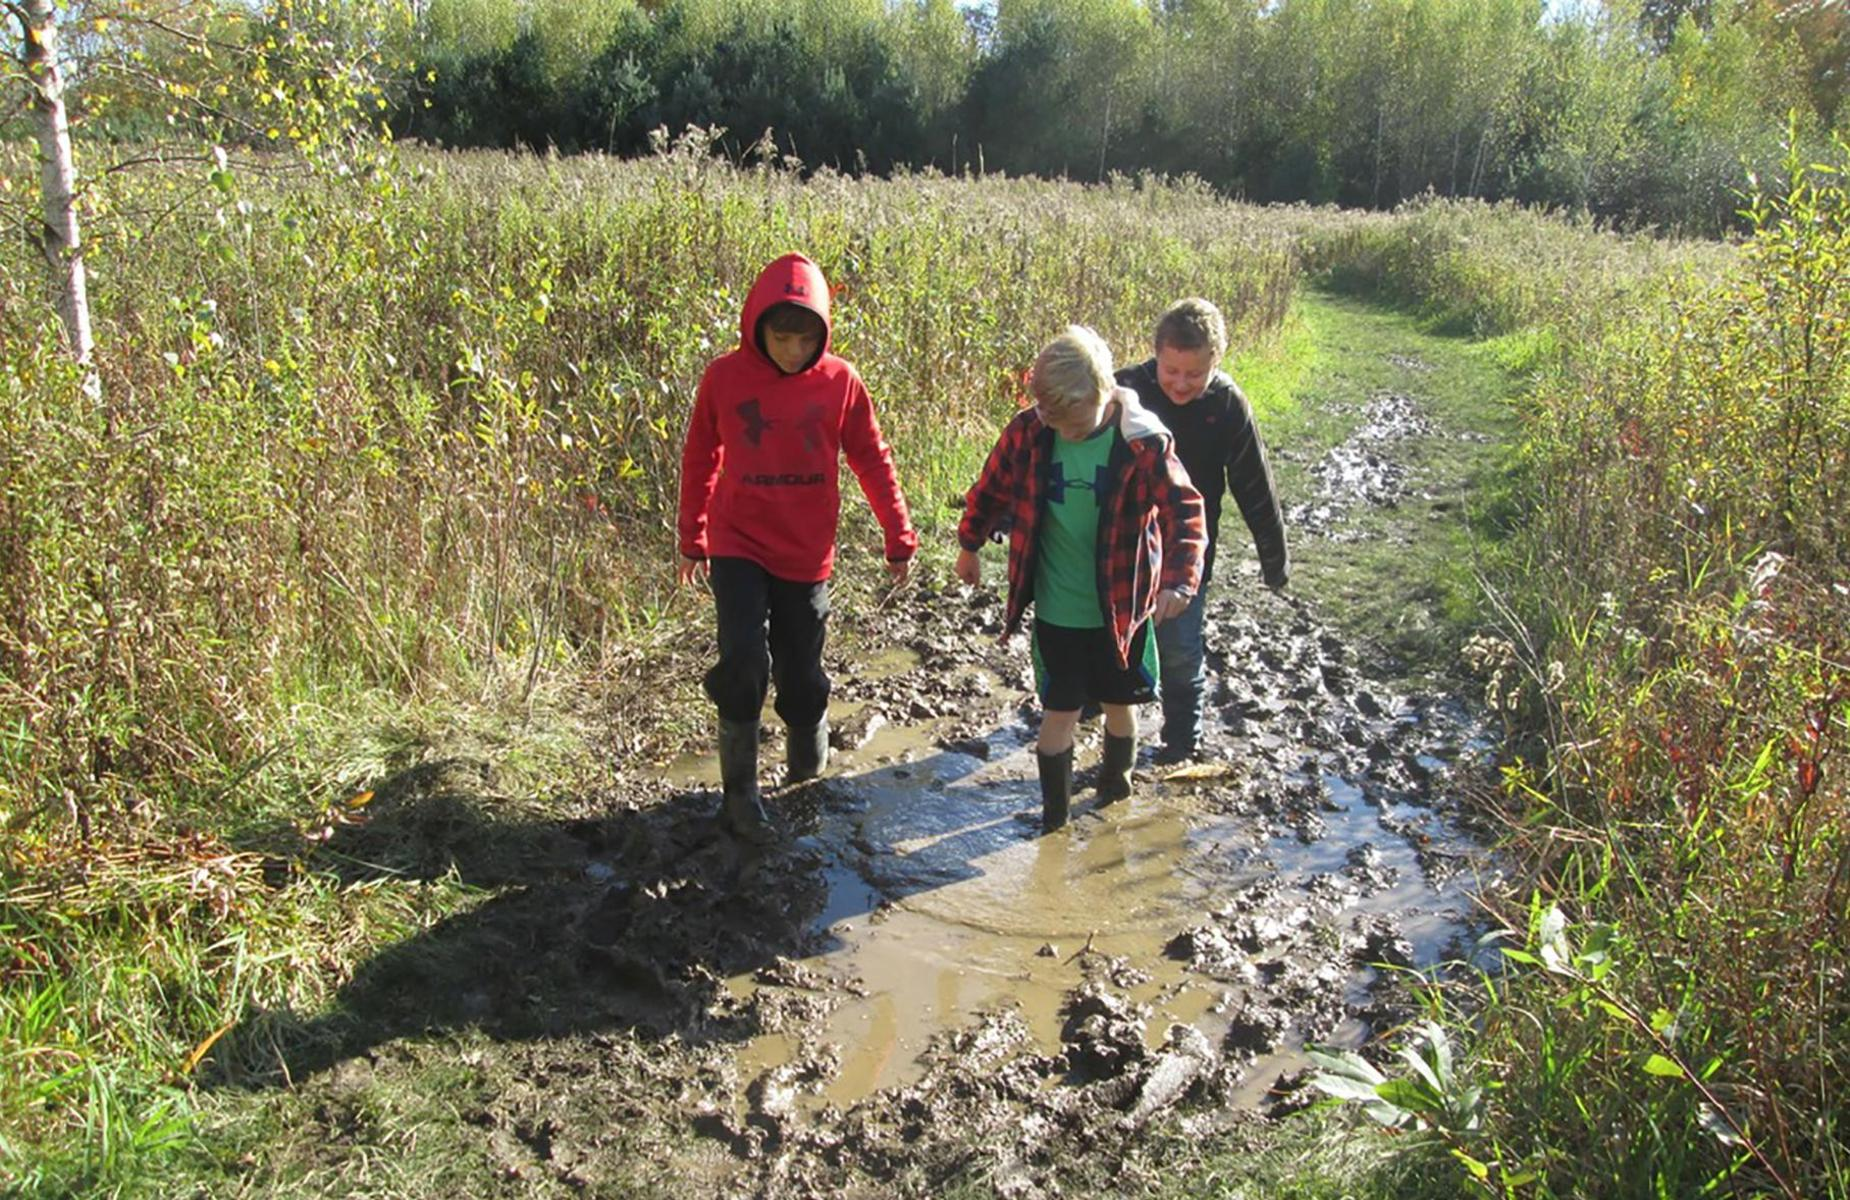 3 students walking through mud